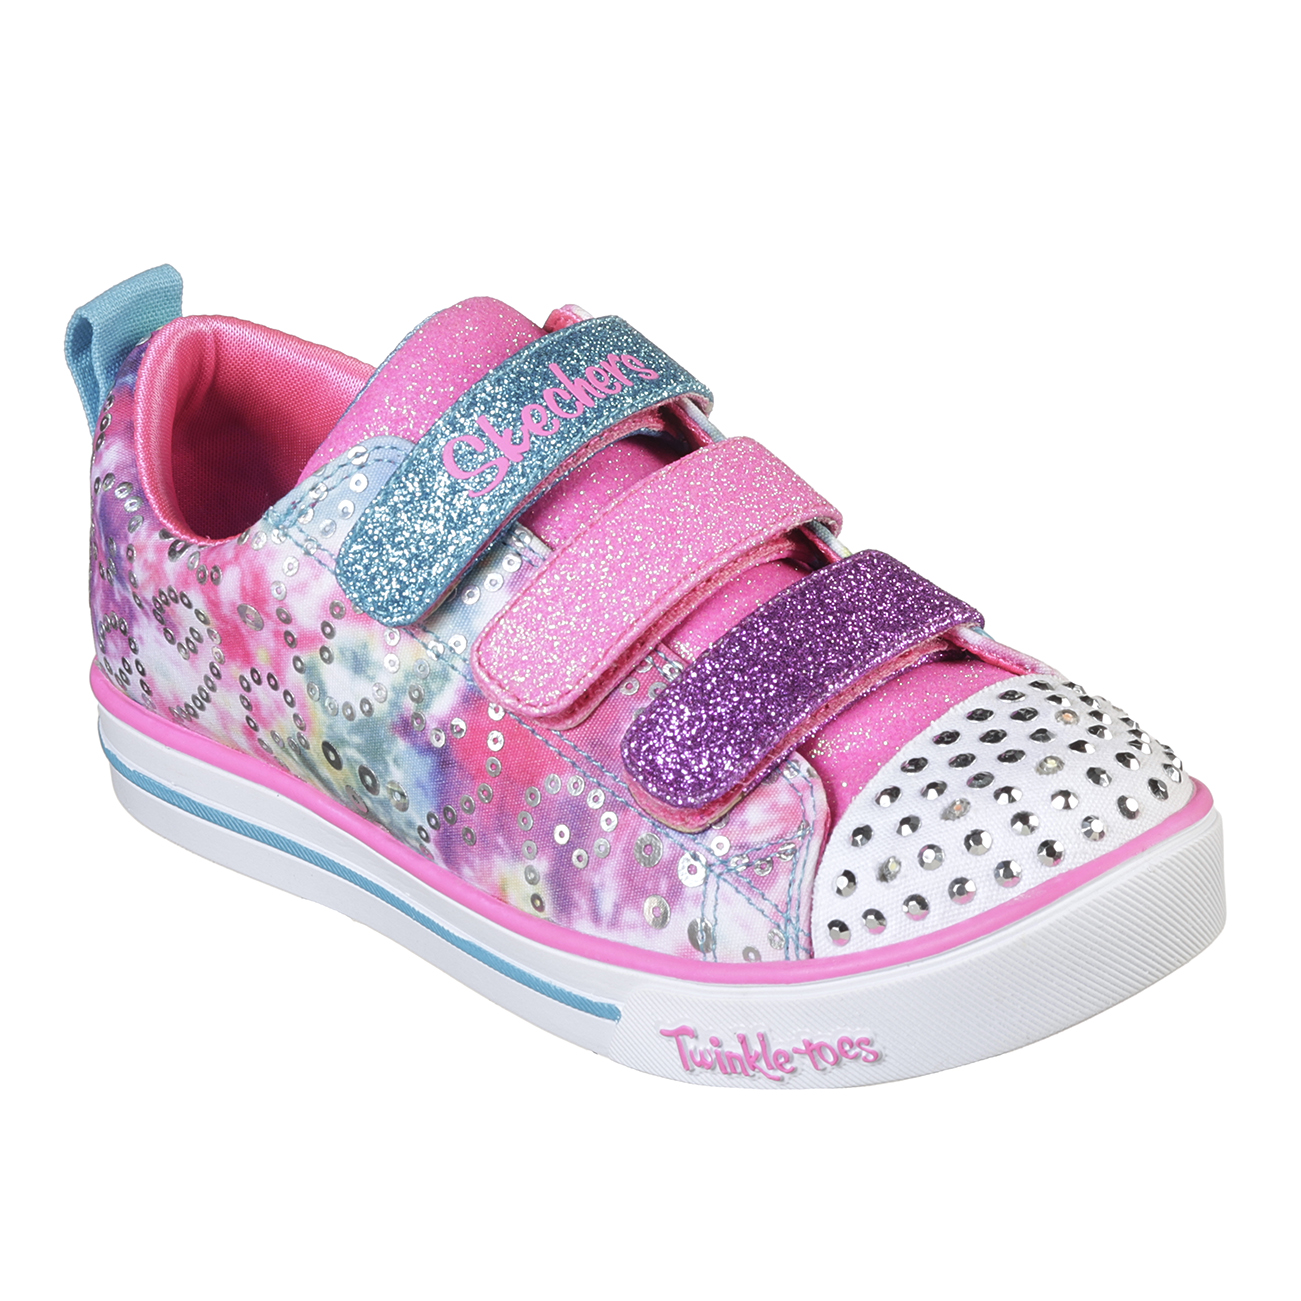 Kids Girls Skechers Sparkle Lite Rainbow Brights